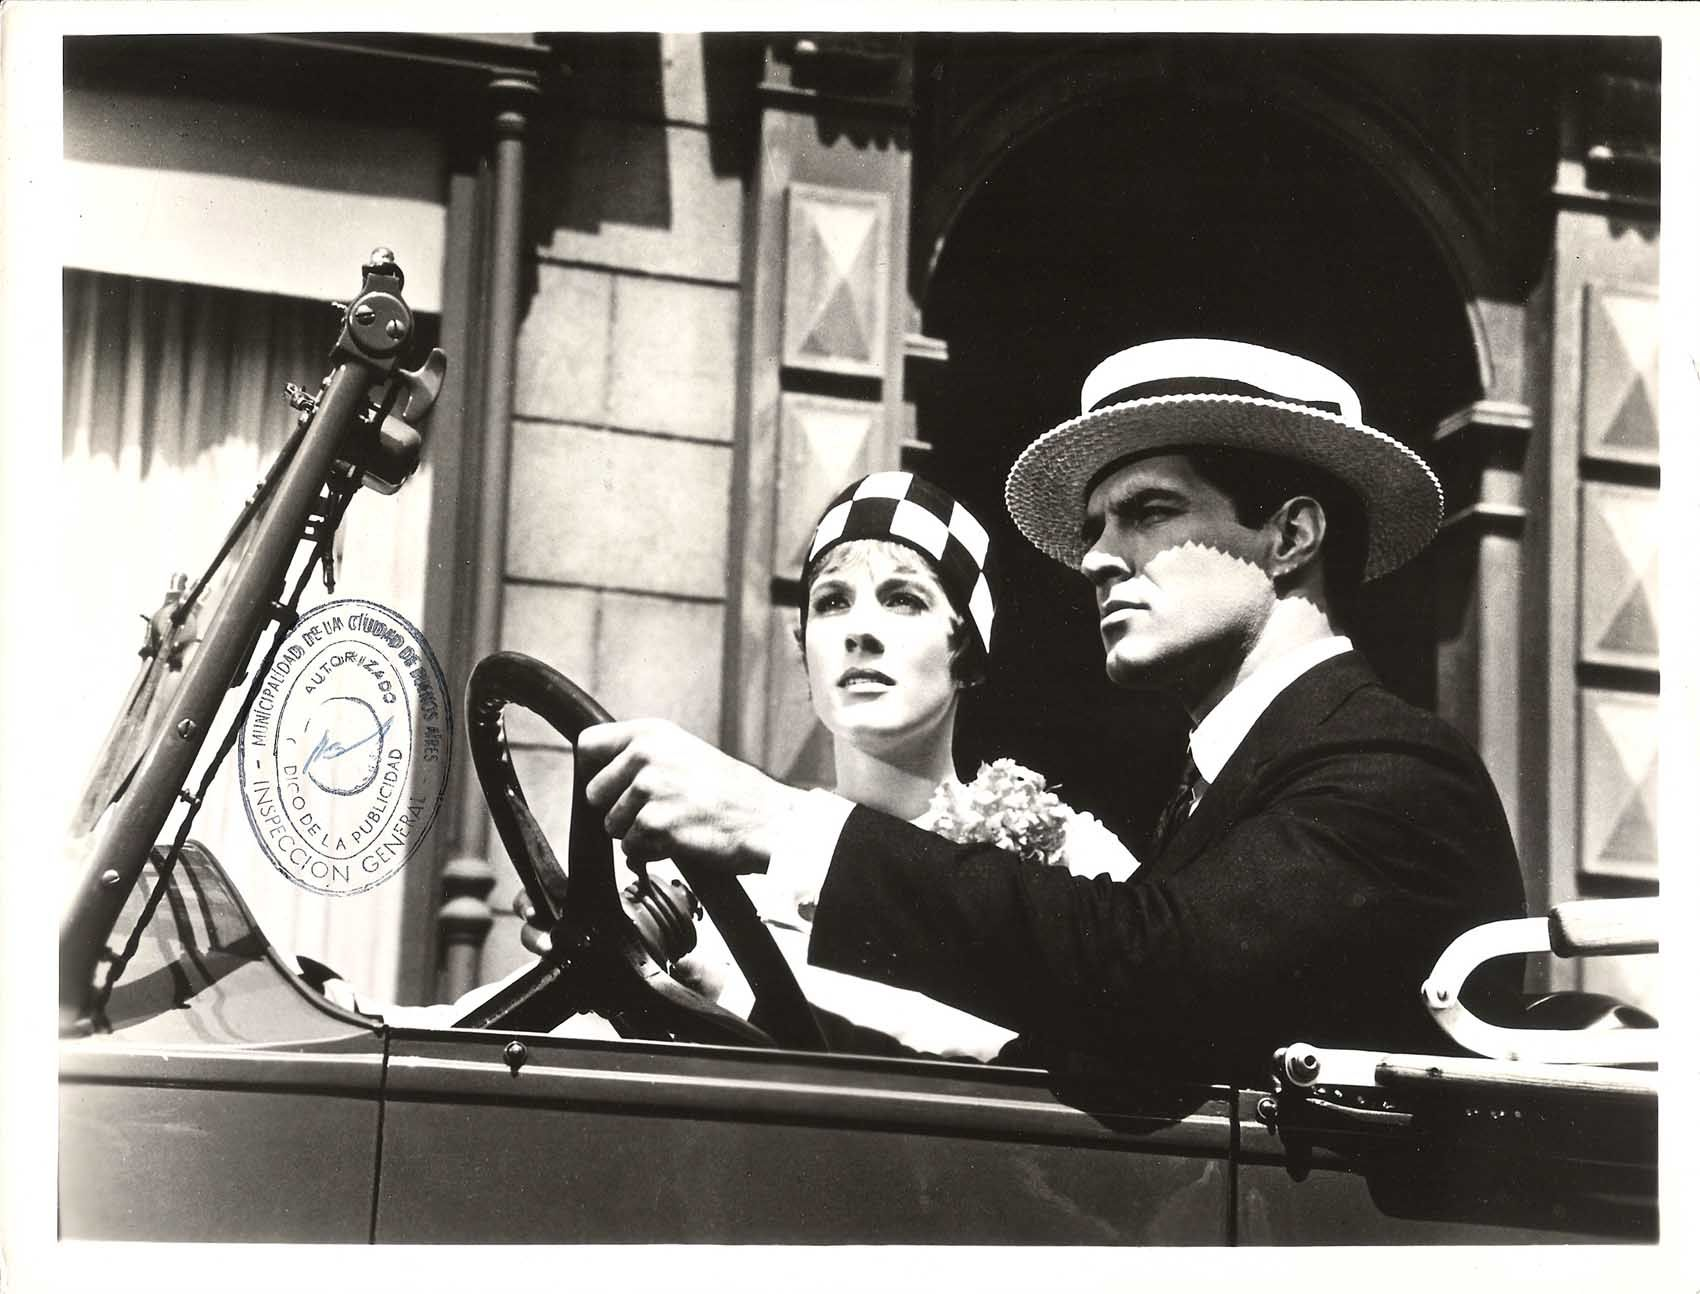 Julie Andrews And James Fox In Thoroughly Modern Millie Directed By Julie Andrews John Gavin Movie Photo